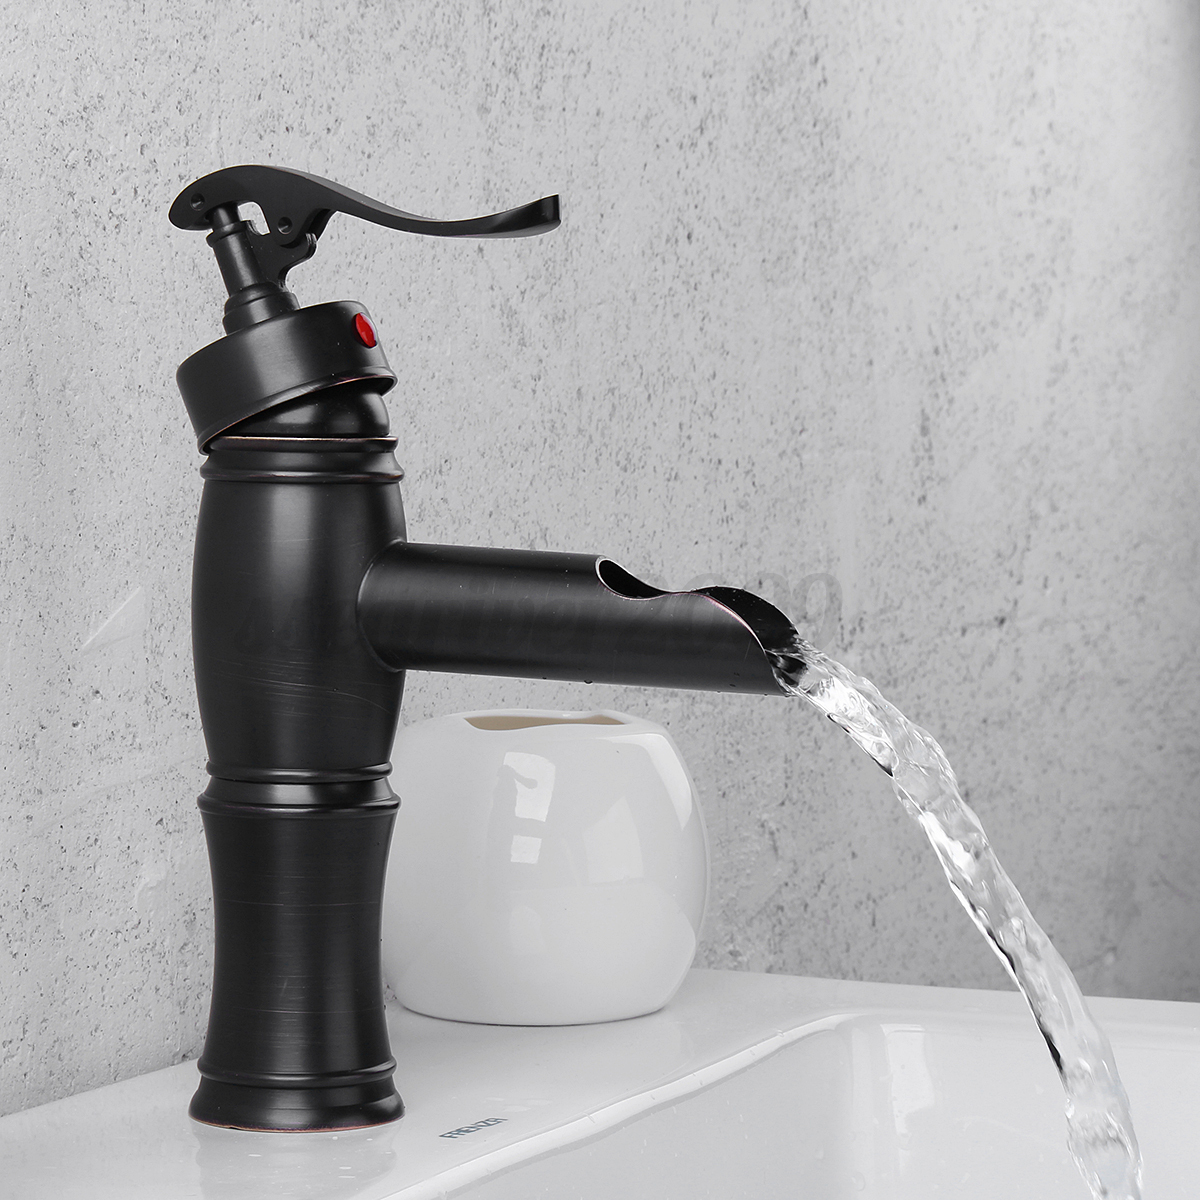 sink faucets kitchen rubbed bronze bathroom waterfall faucet sink vessel 2260